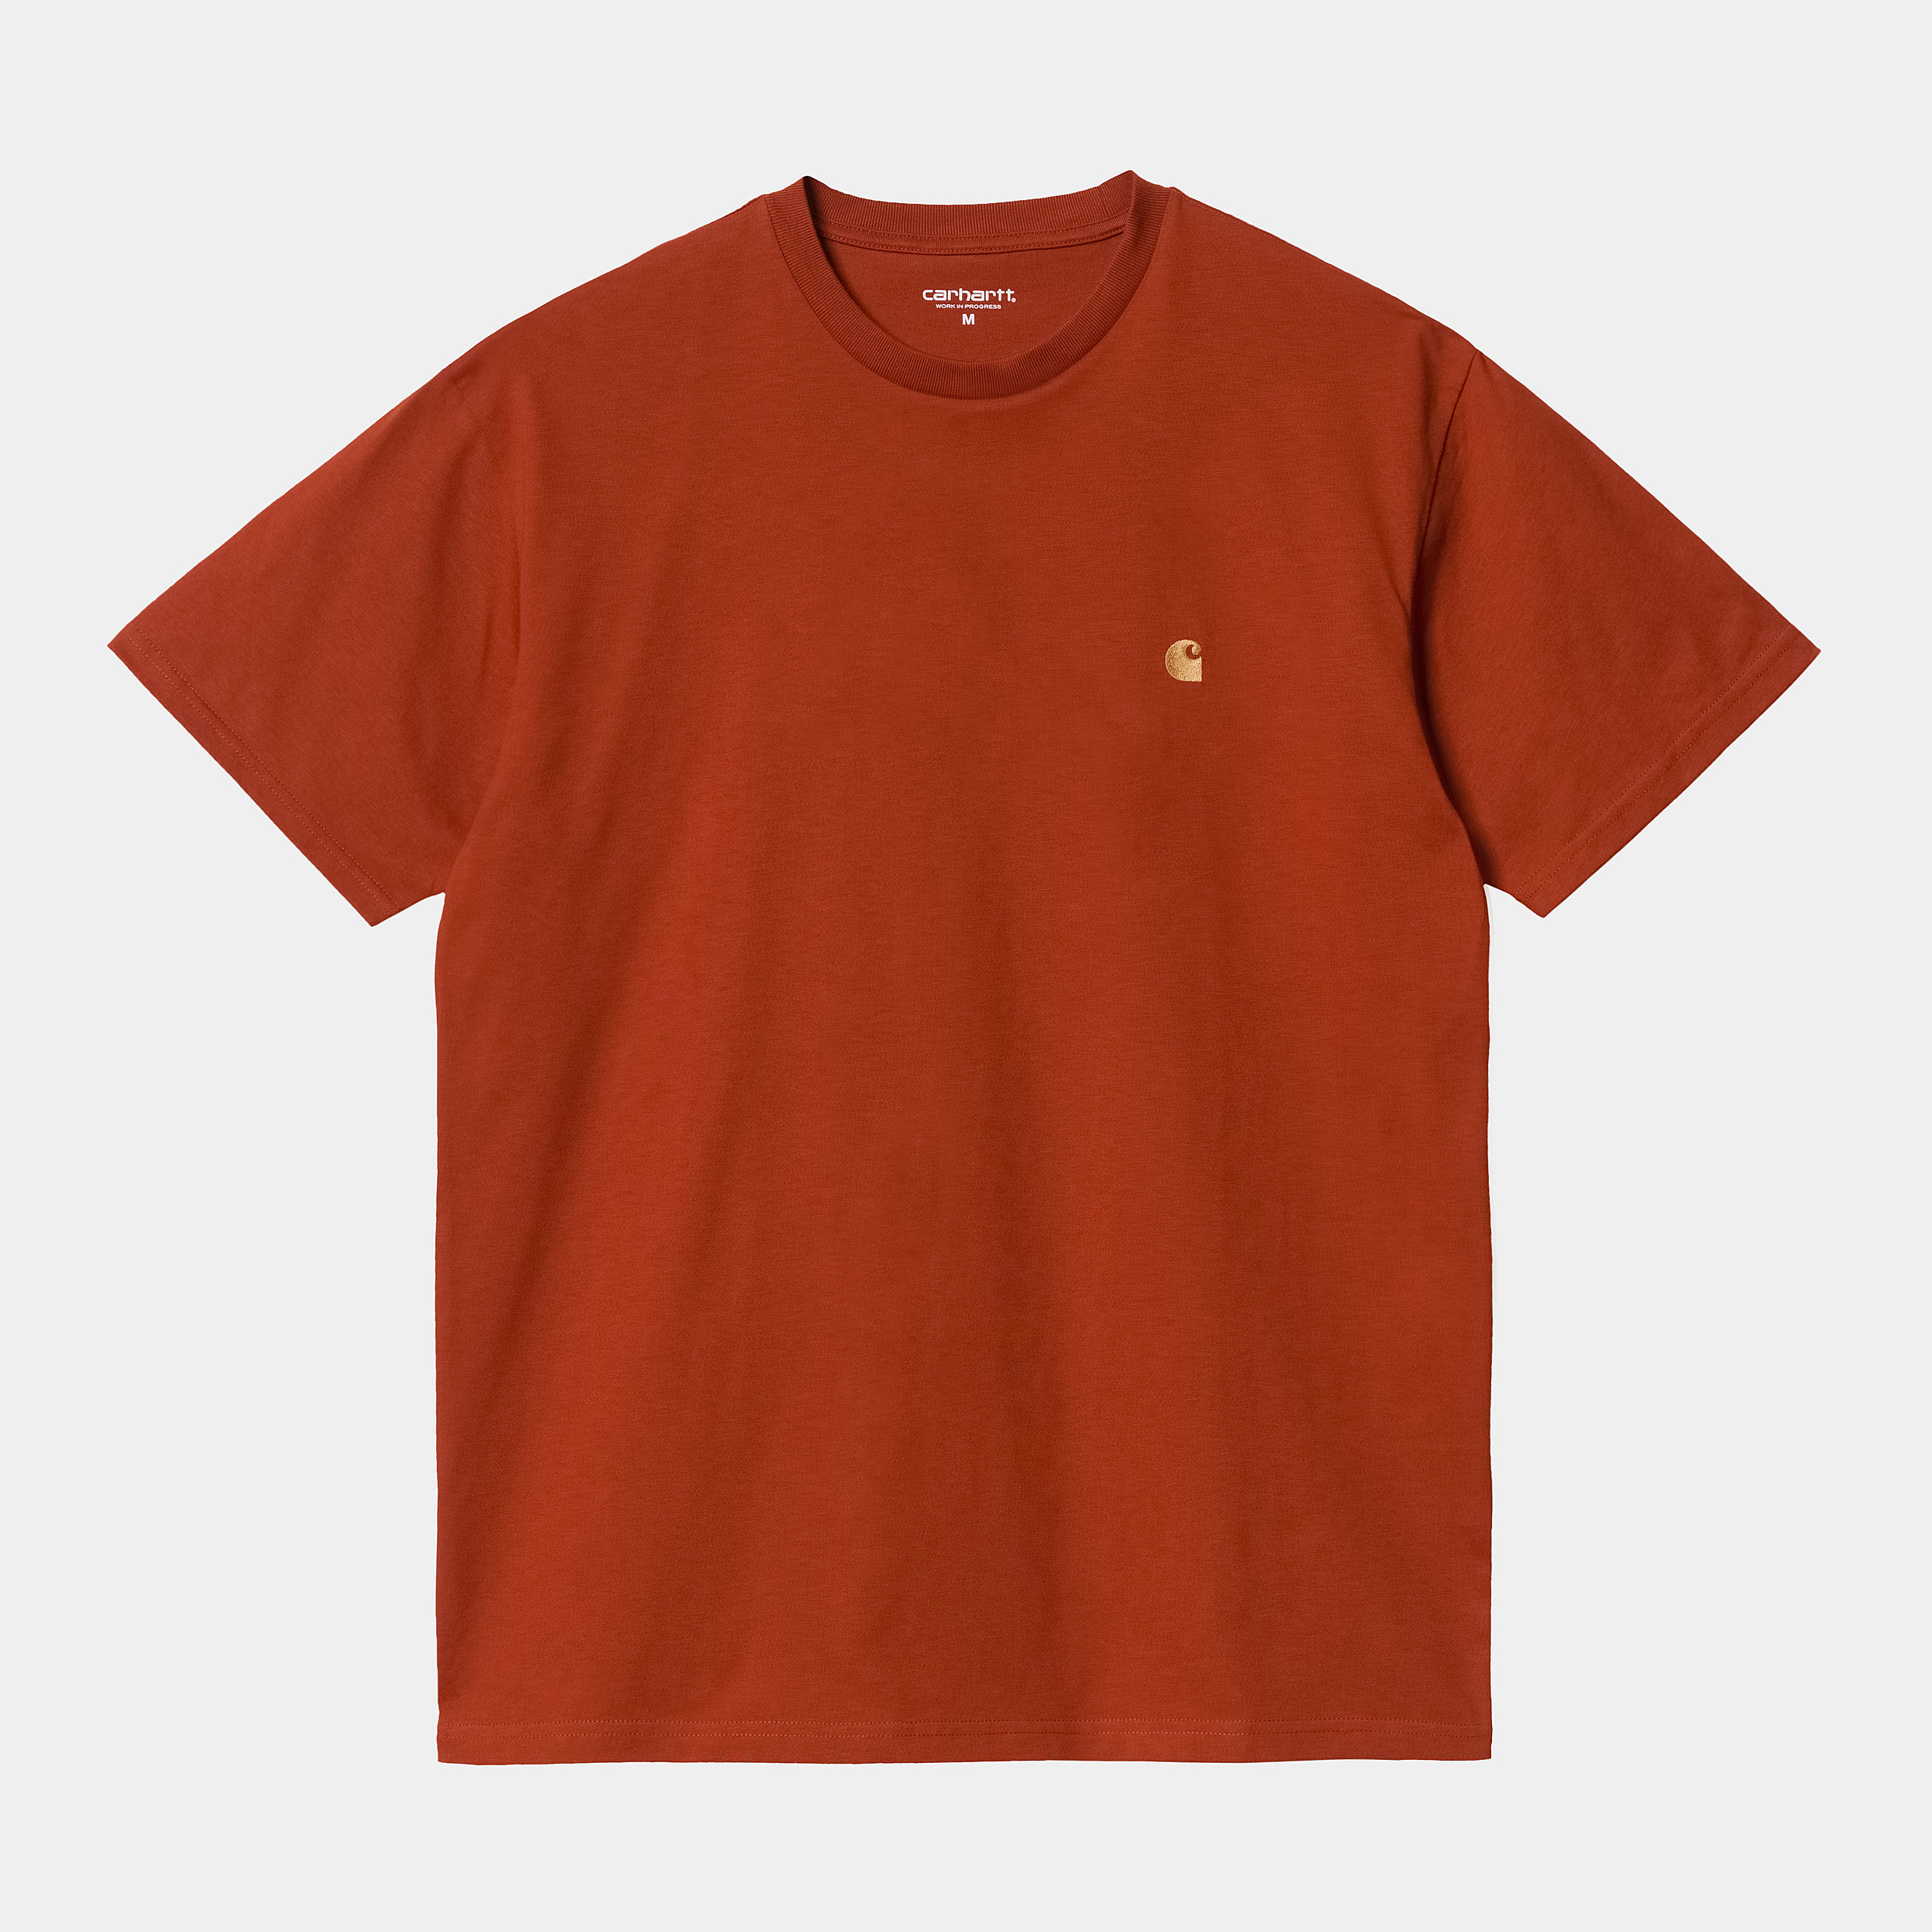 Carhartt WIP - CHASE T-SHIRT - Copperton/Gold